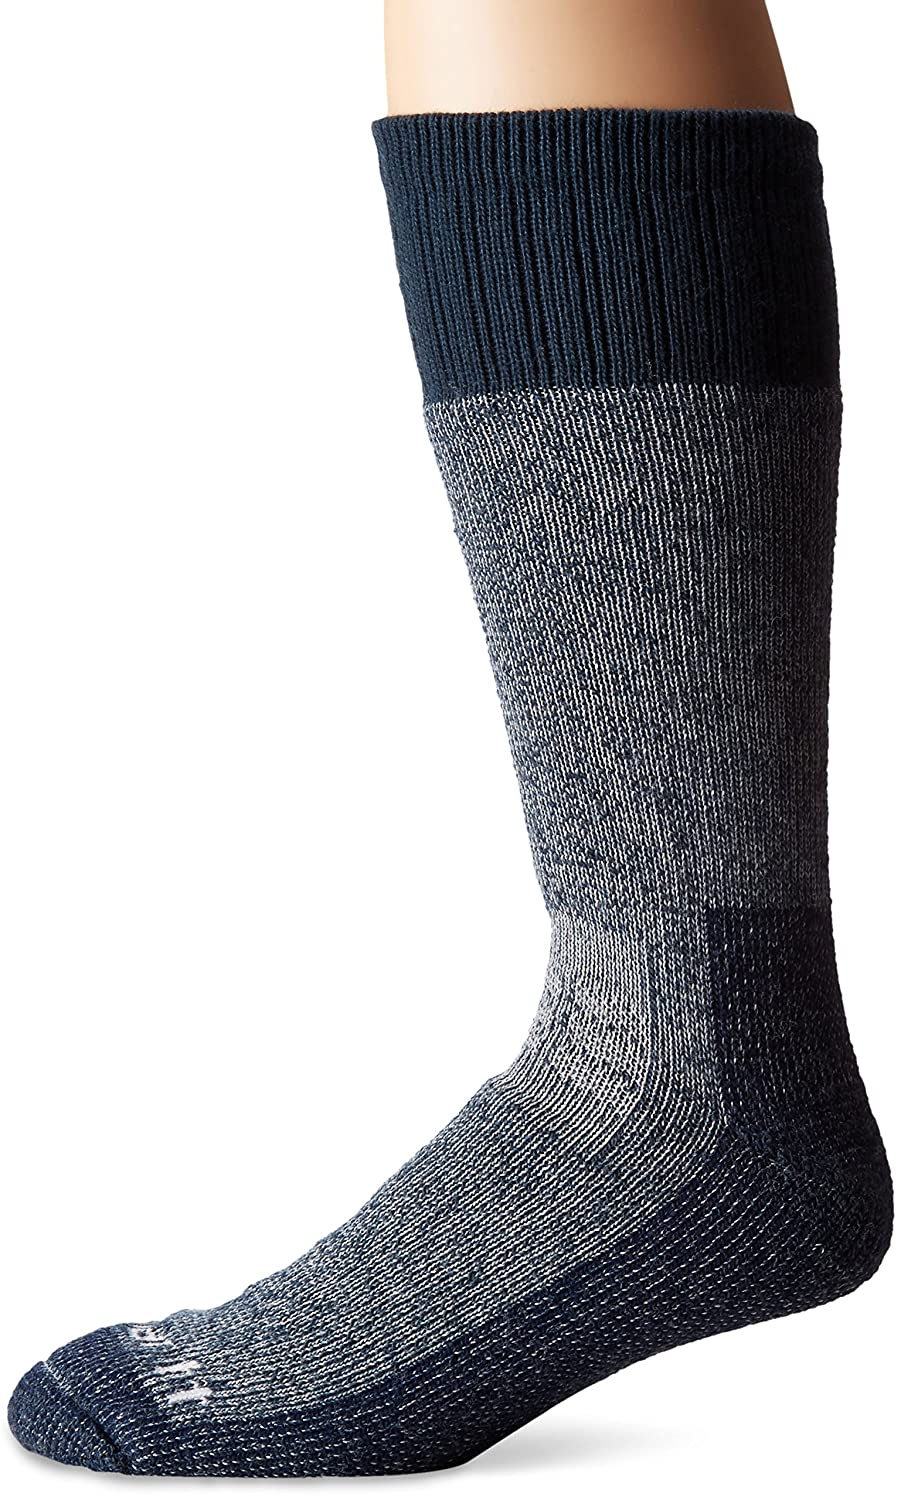 Carhartt Cold Weather Socks